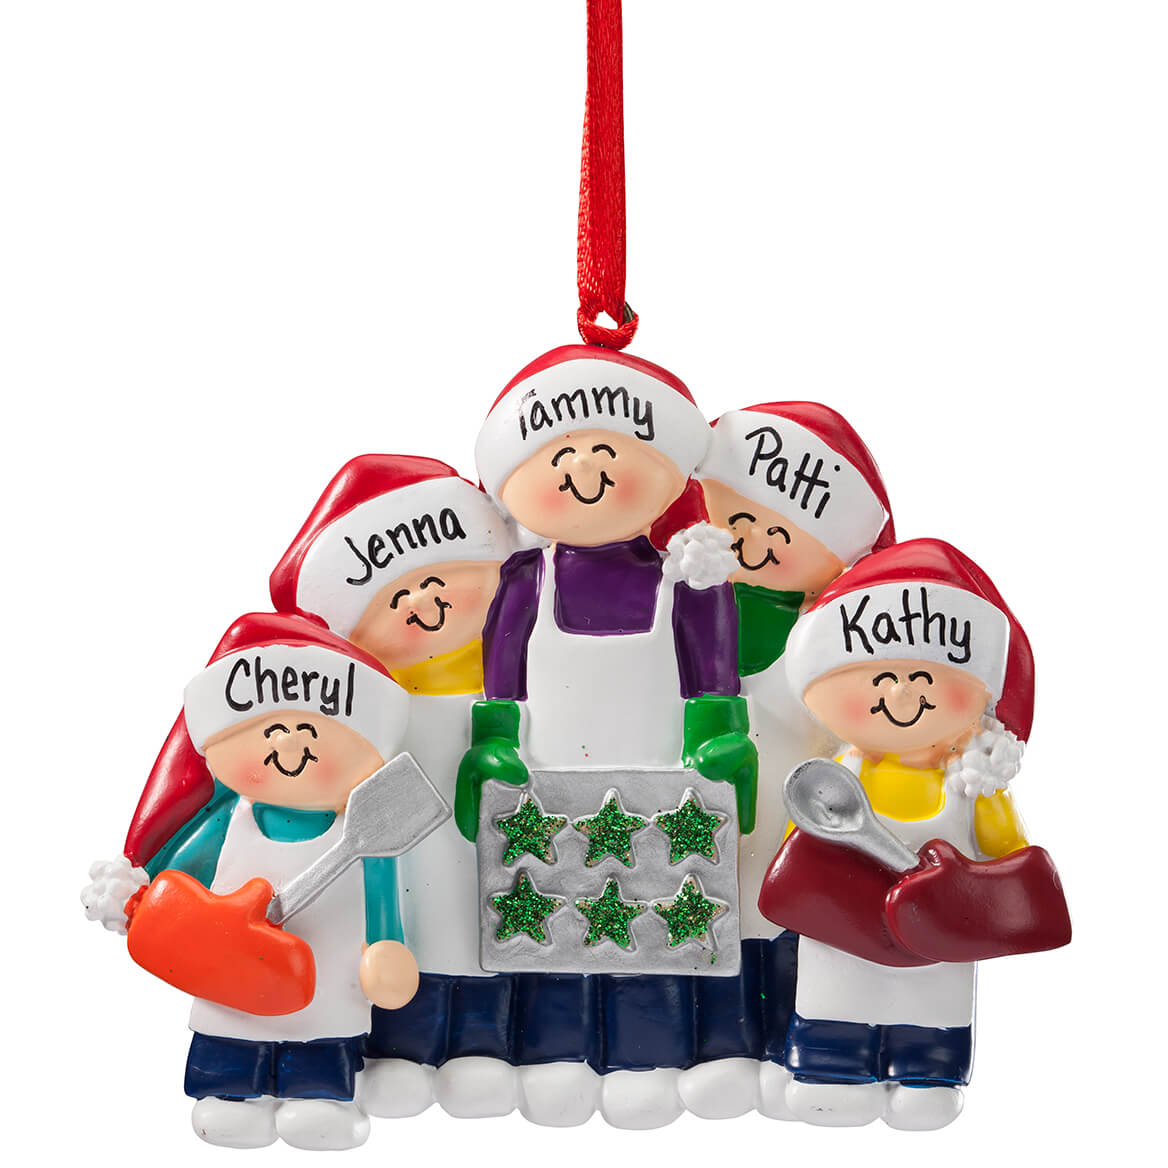 Christmas Ornaments With Names On Them.Personalized Ornaments Miles Kimball